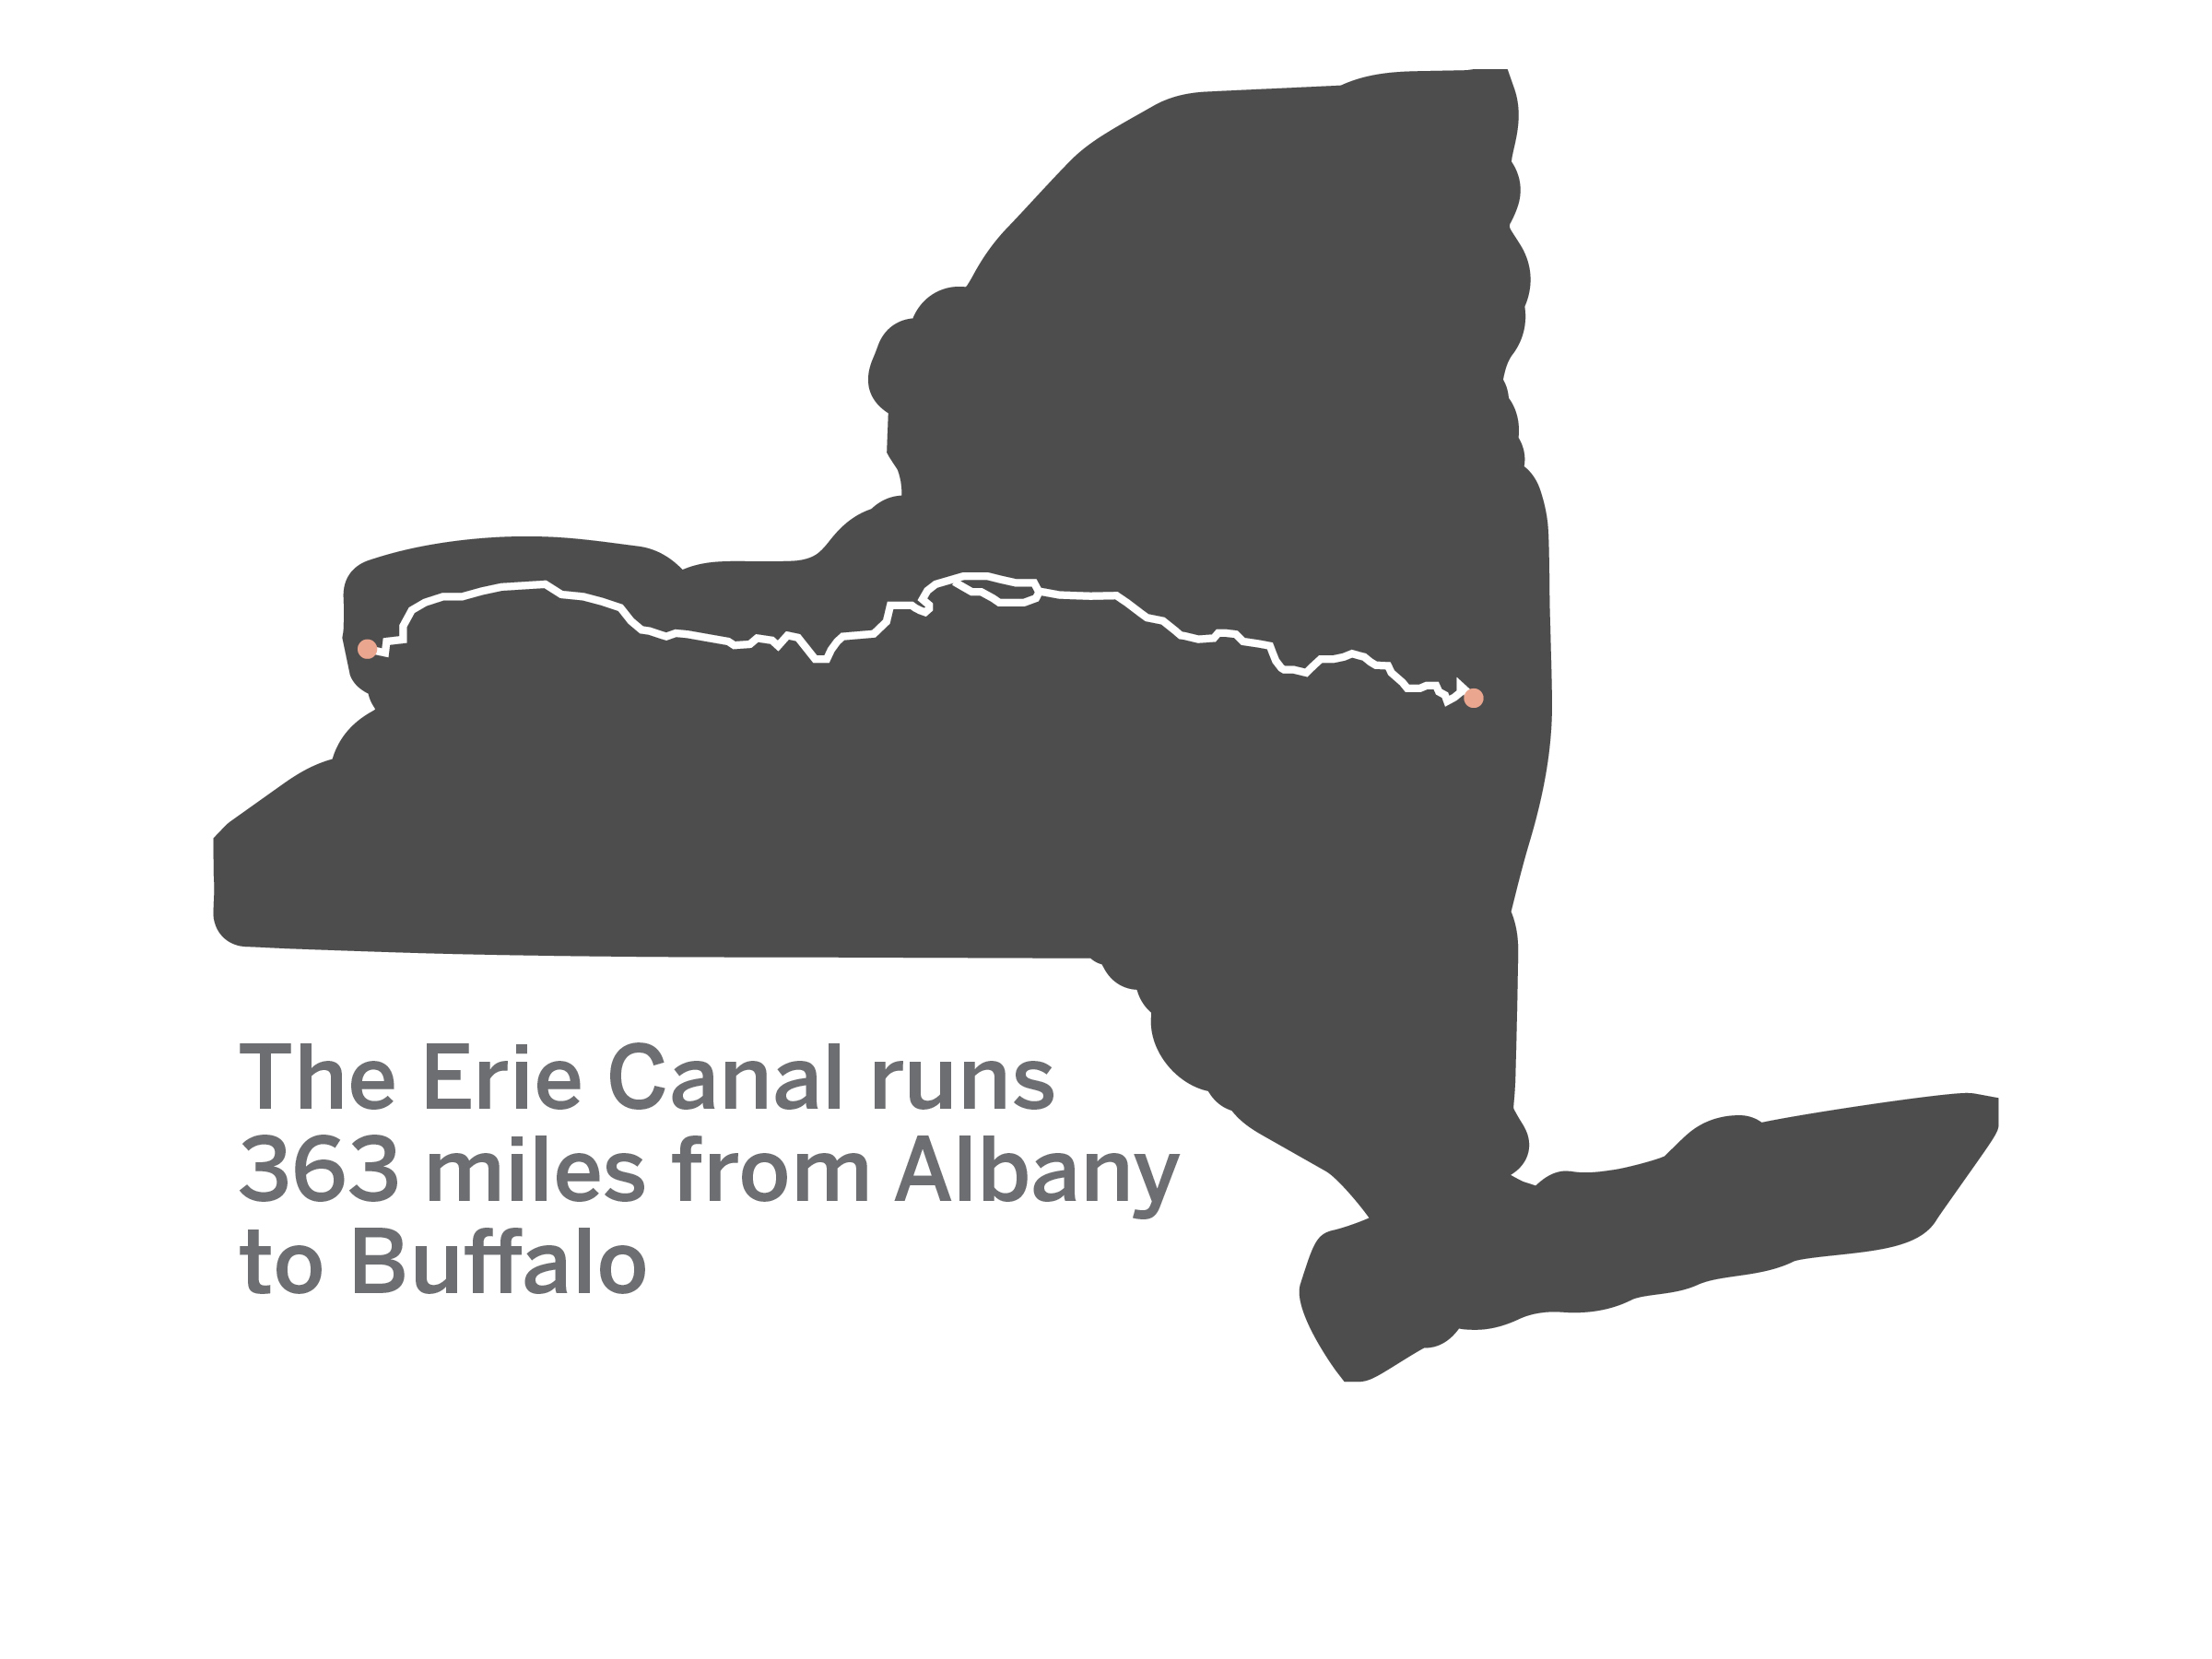 The Erie Canal runs 363 miles from Albany to Buffalo